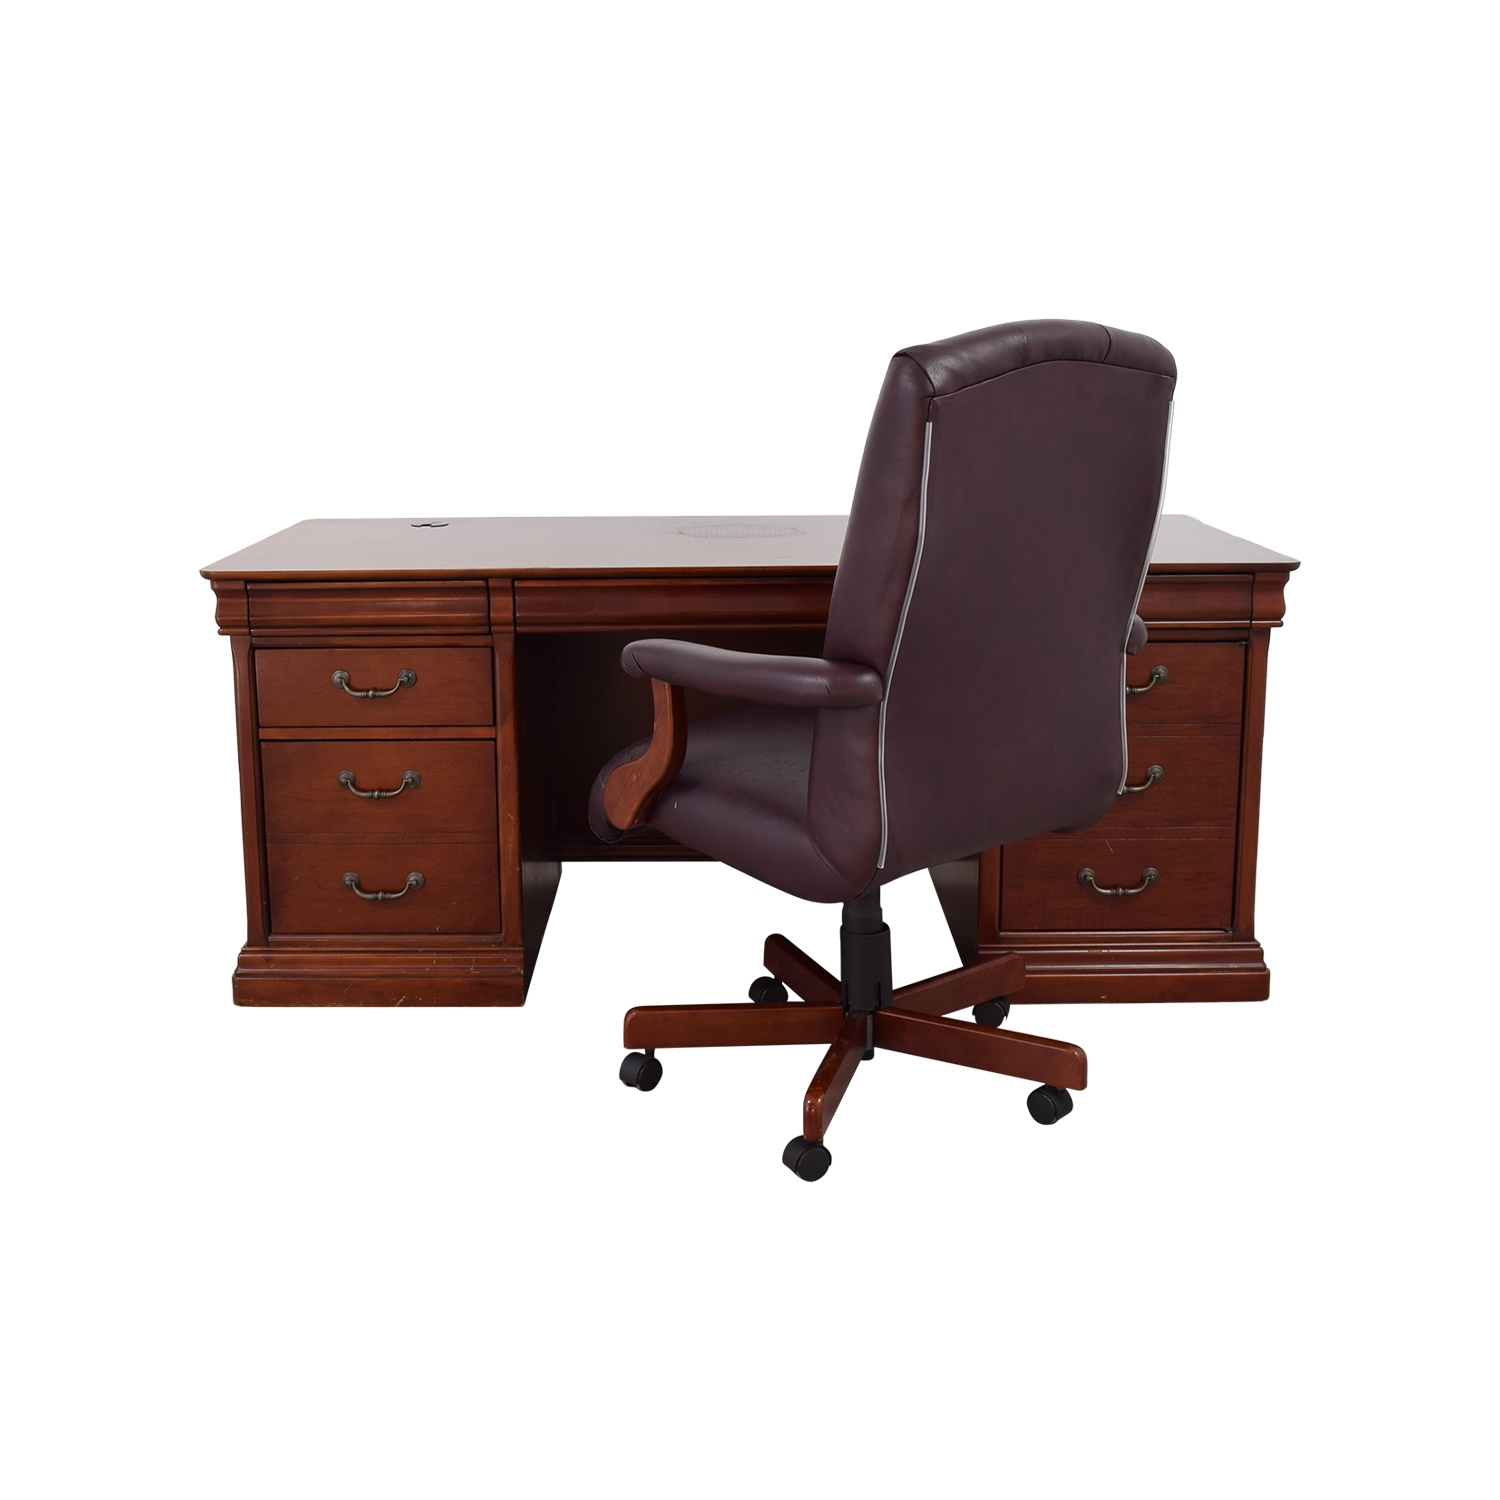 Used office chairs near me used furniture near me for Office furniture near me